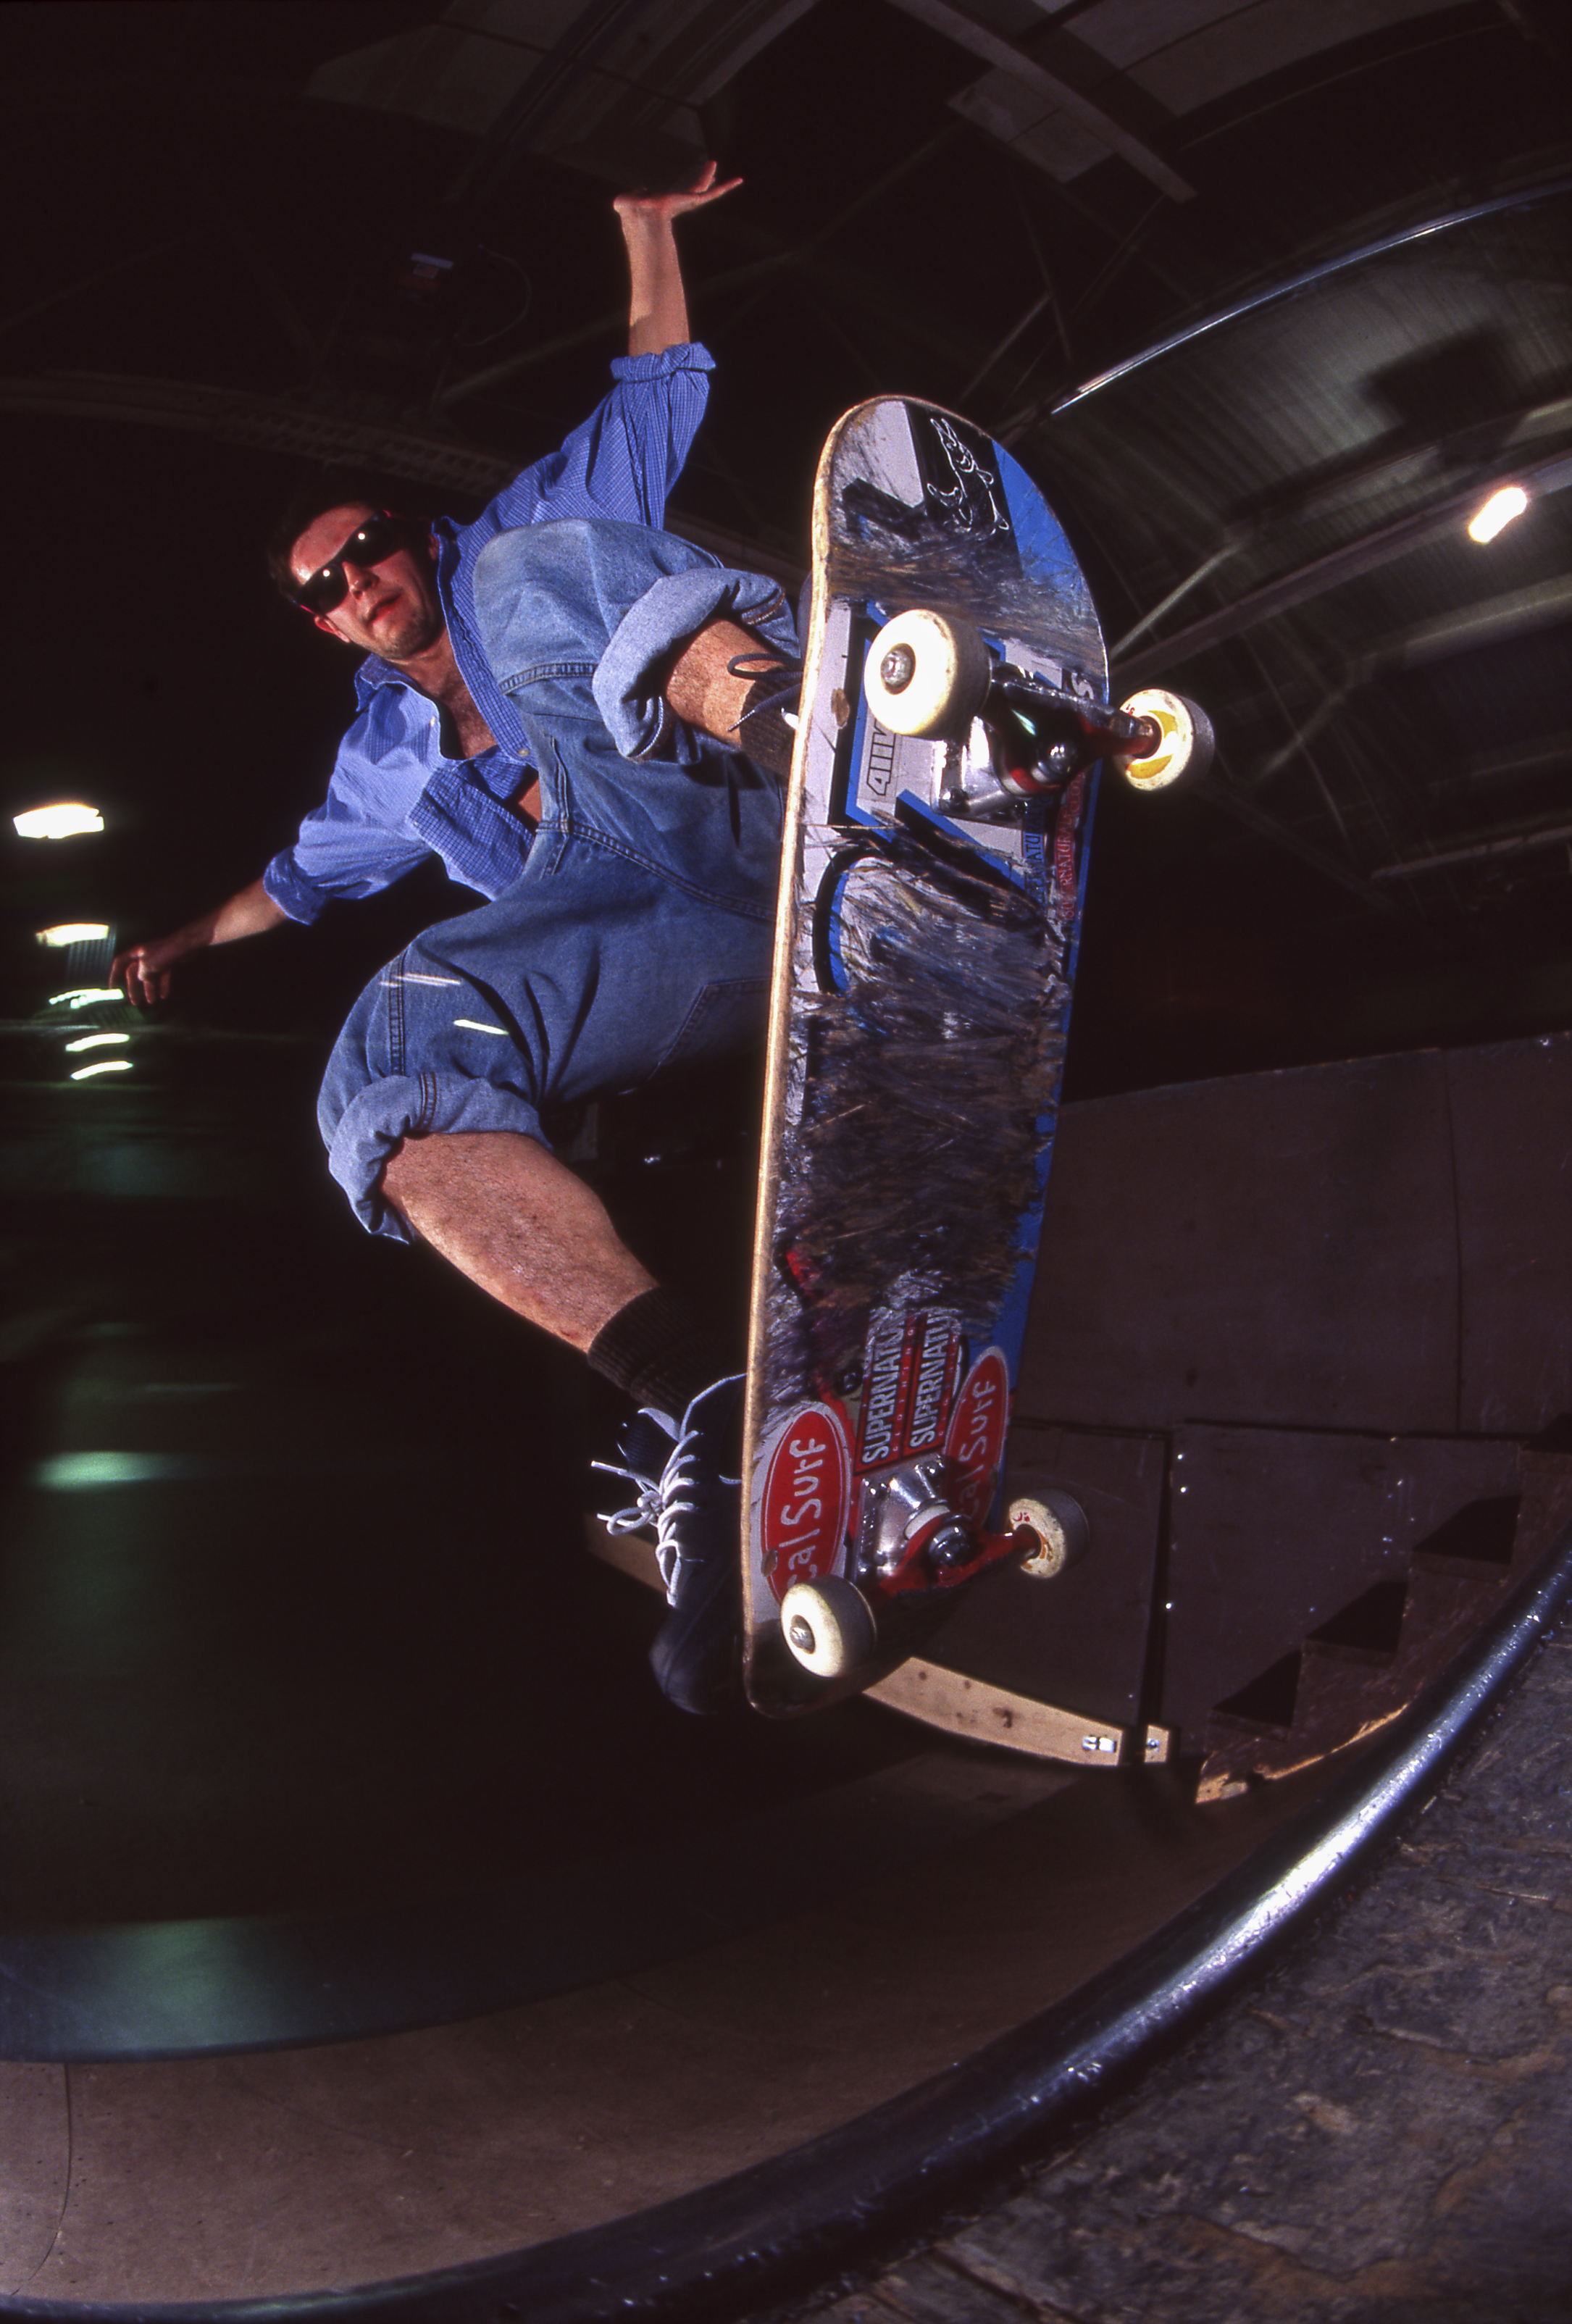 VP contributor  Mike Munzenrider doing a blunt fakie on a 7.5 board with rolled up jeans and red Royal trucks, very early aughts.